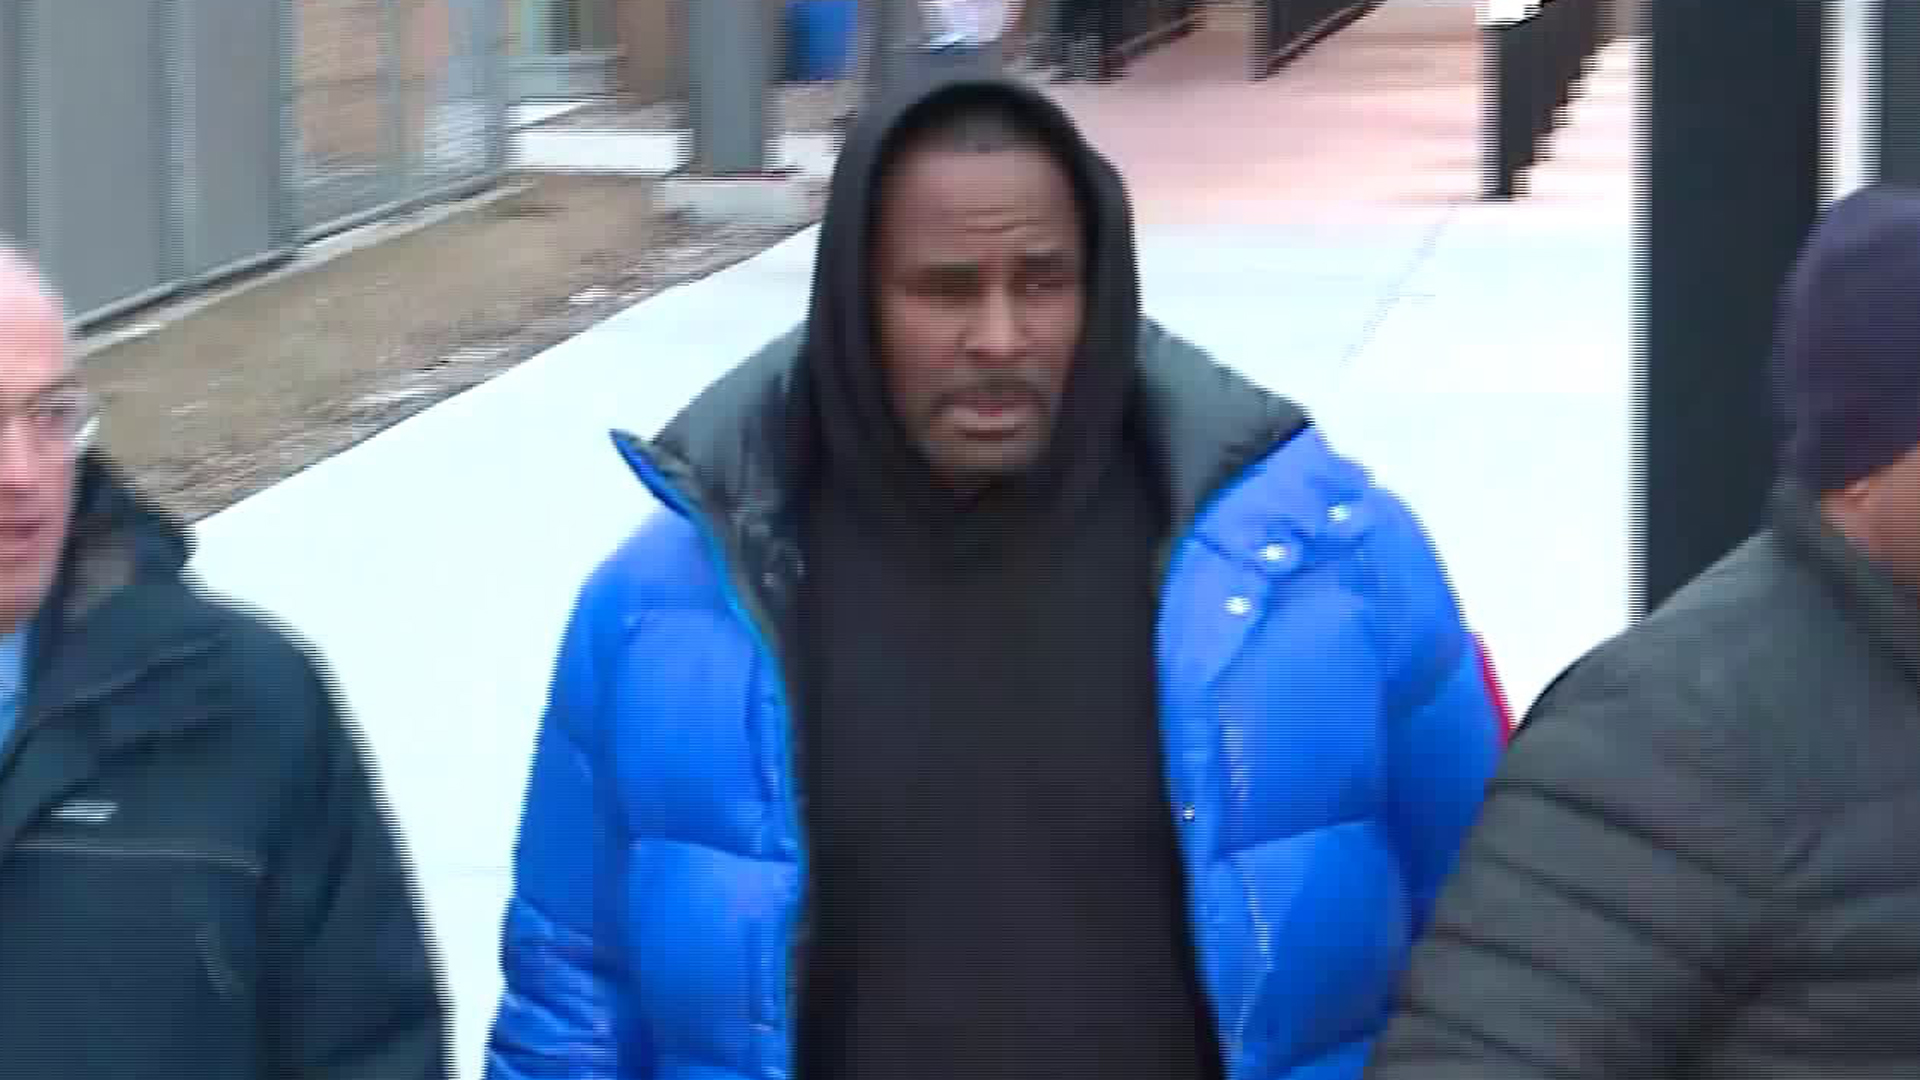 R. Kelly walks out of a Chicago jail after posting $100,000 bail on Feb. 25, 2019. (Credit: WGN)